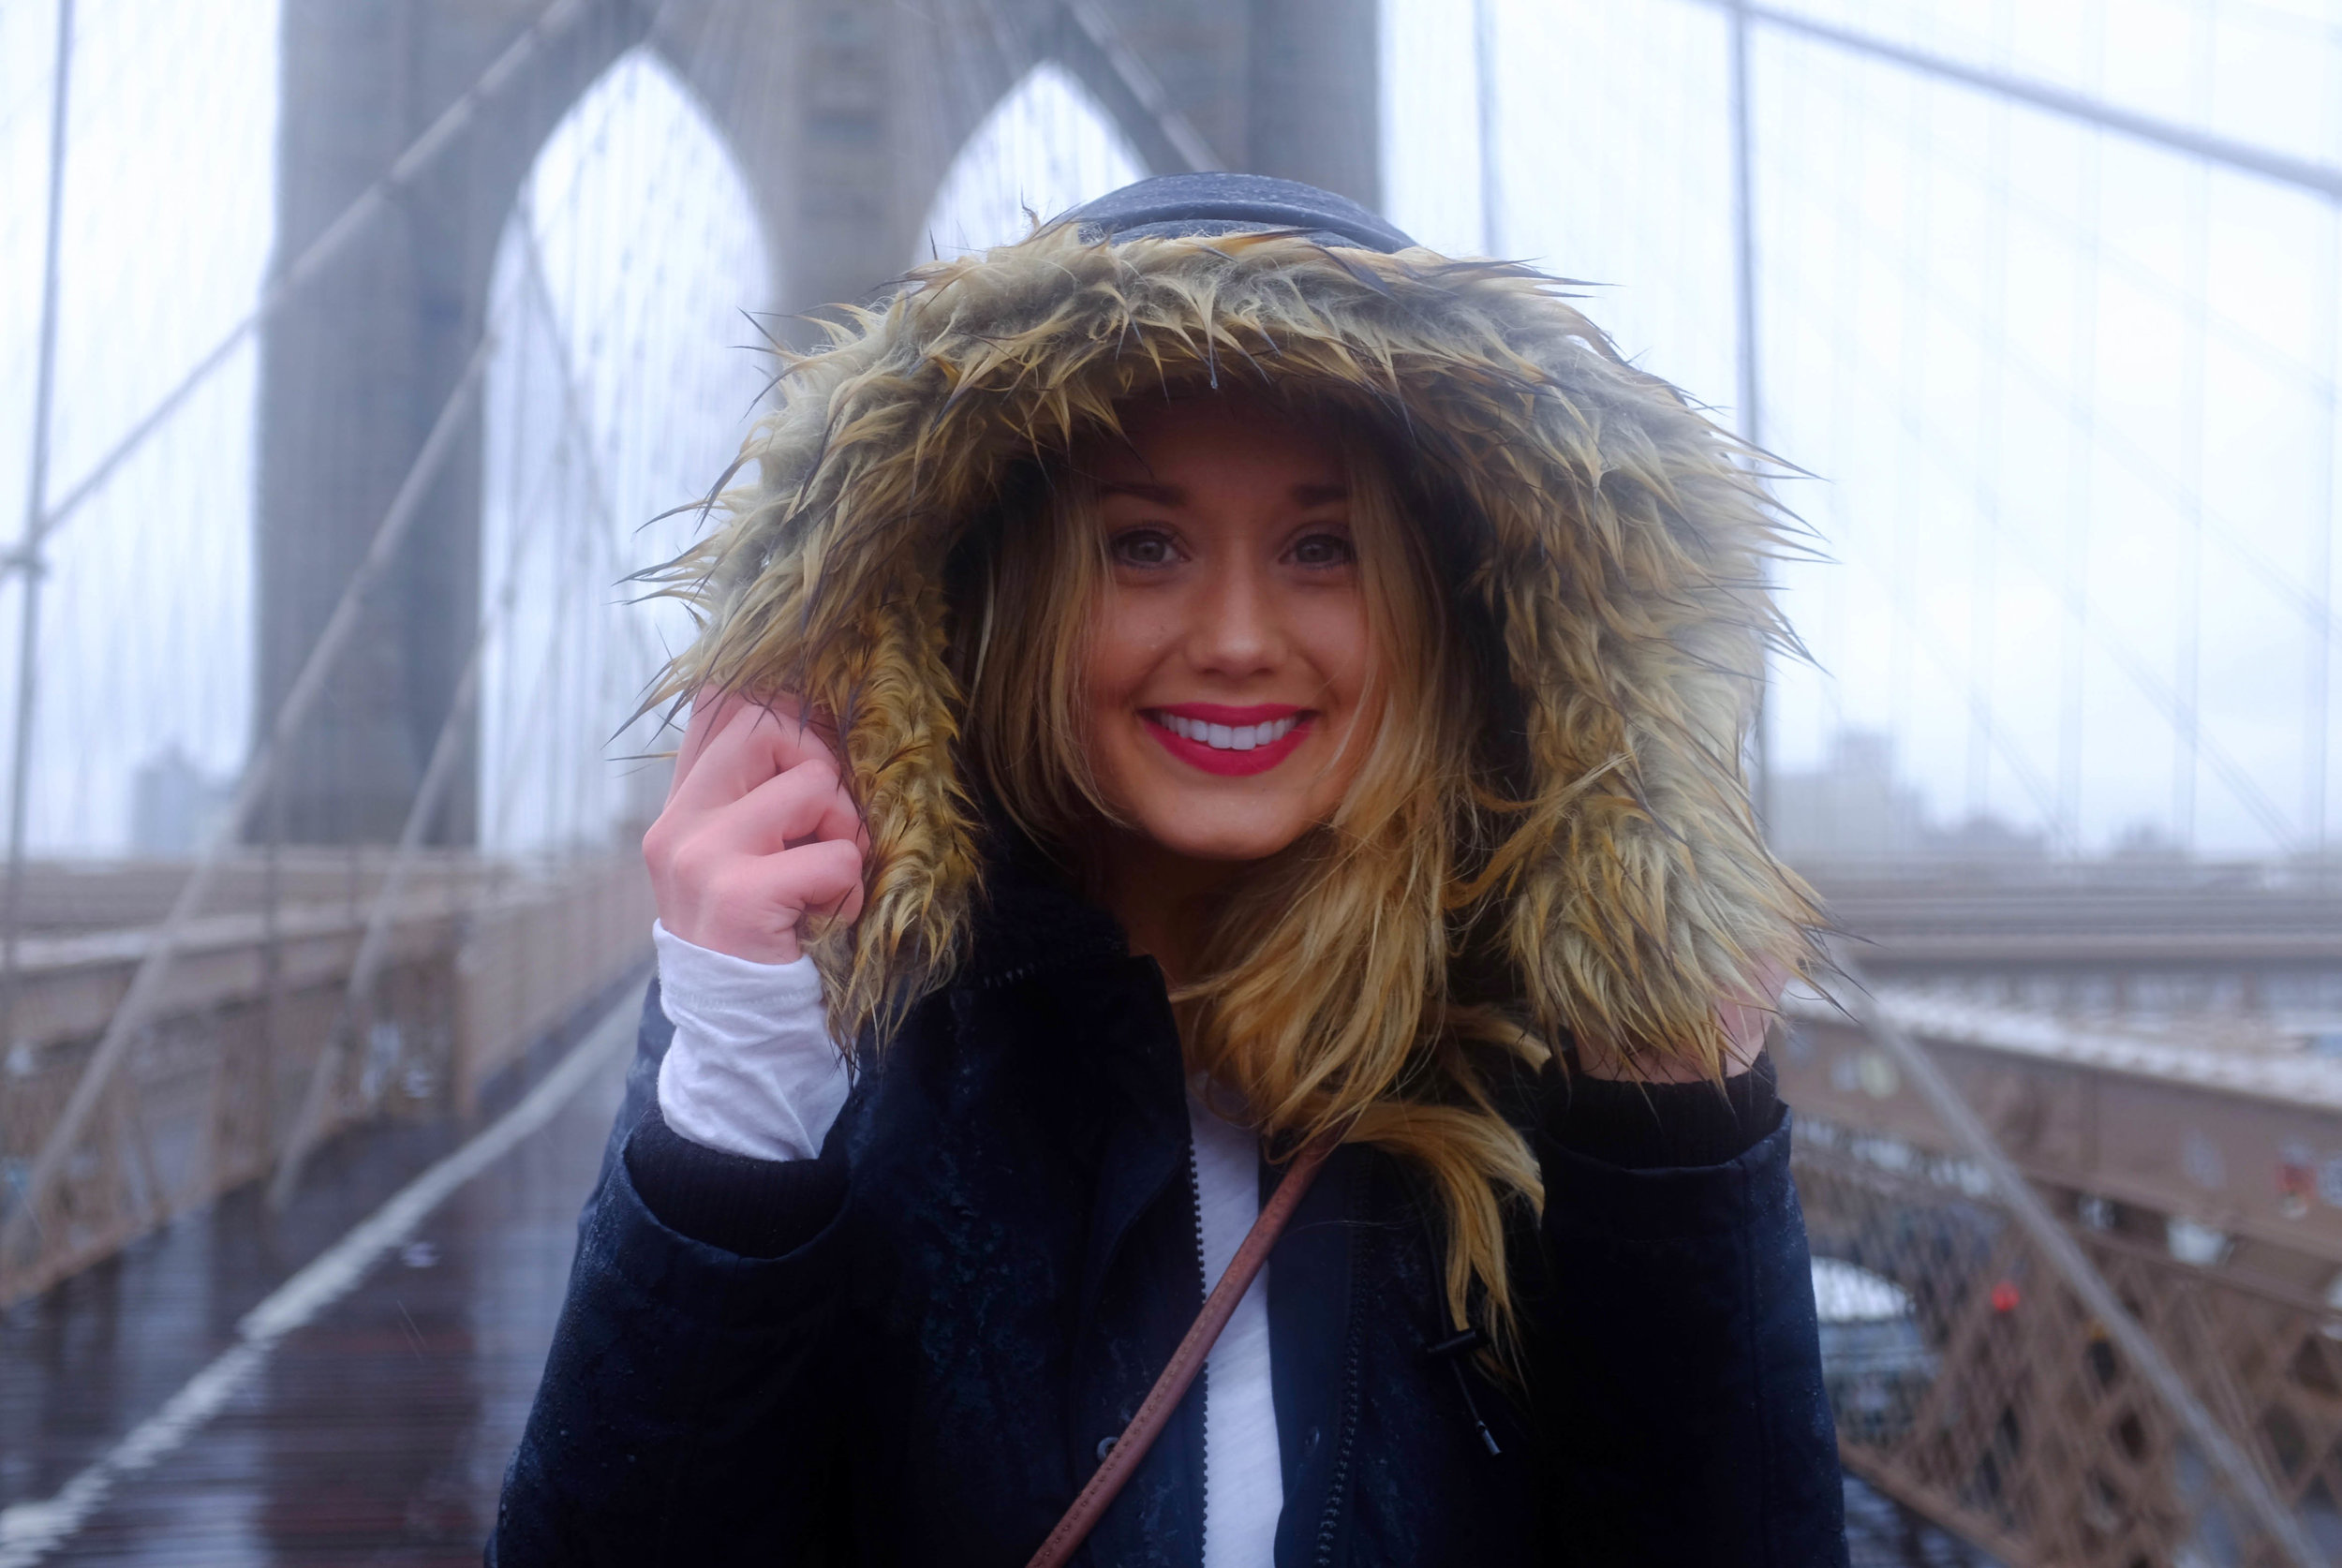 Kaci Nicole - Smile on Brooklyn Bridge.jpg